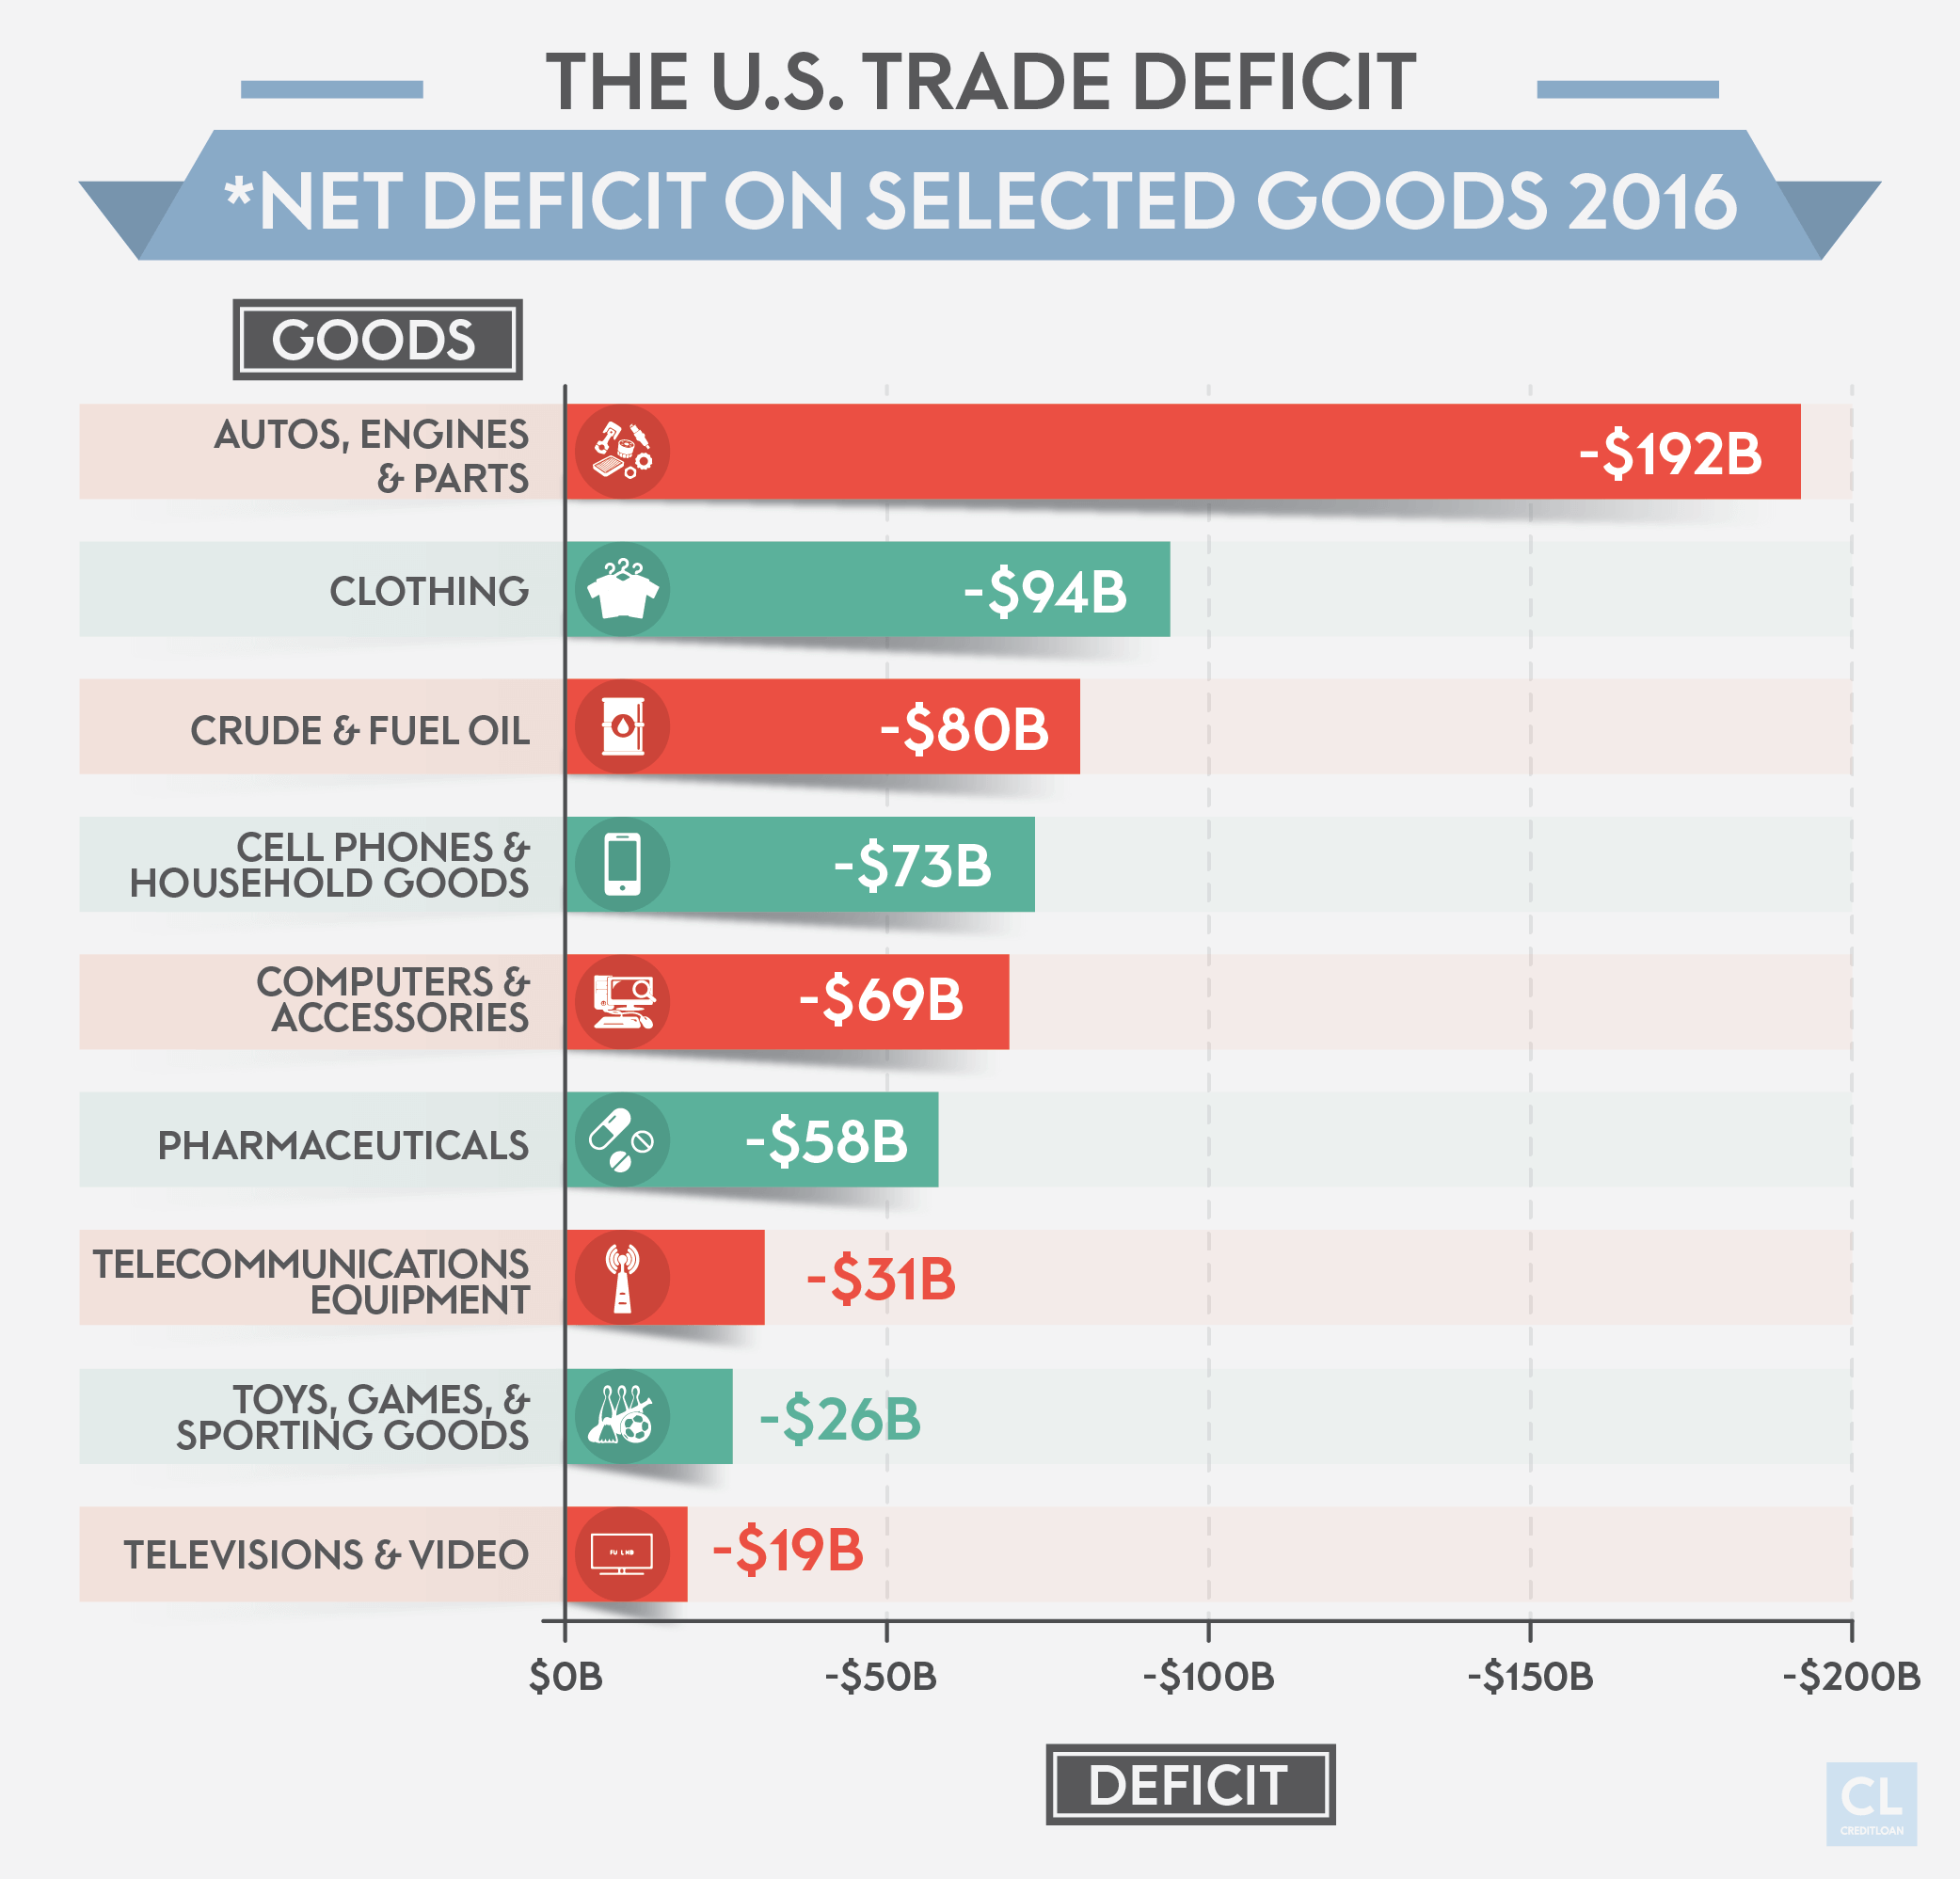 The U.S. Trade Deficit